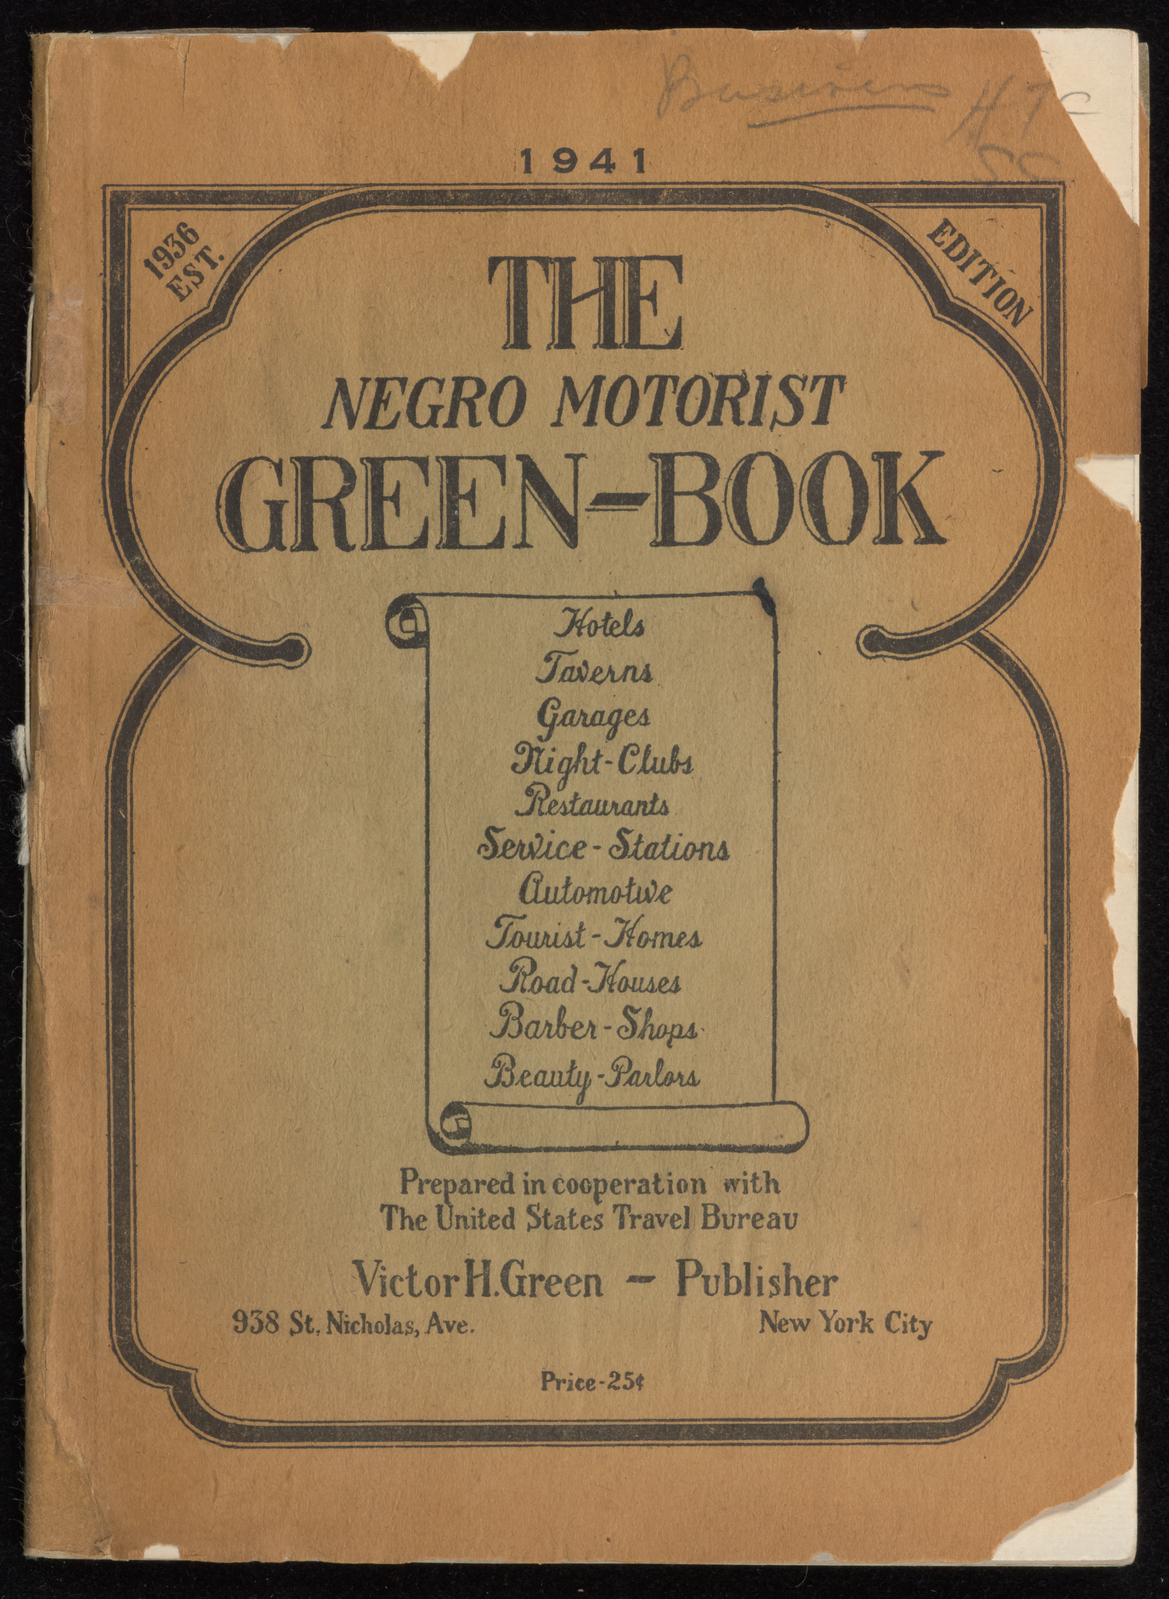 Green Book Cover 1941 Edition